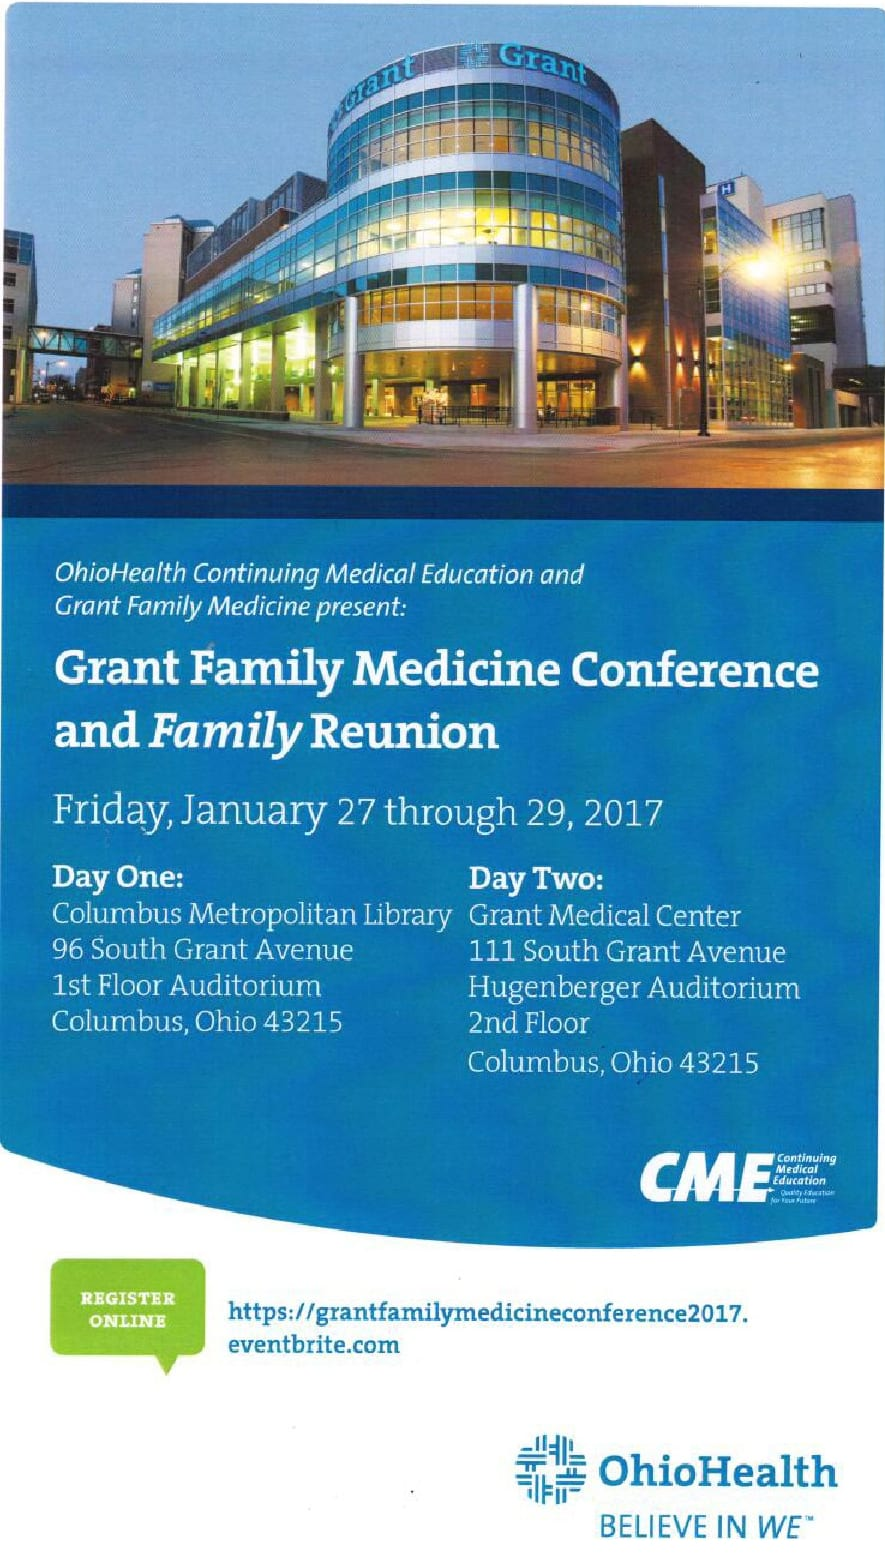 Grant Family Medicine Conference and Family Reunion